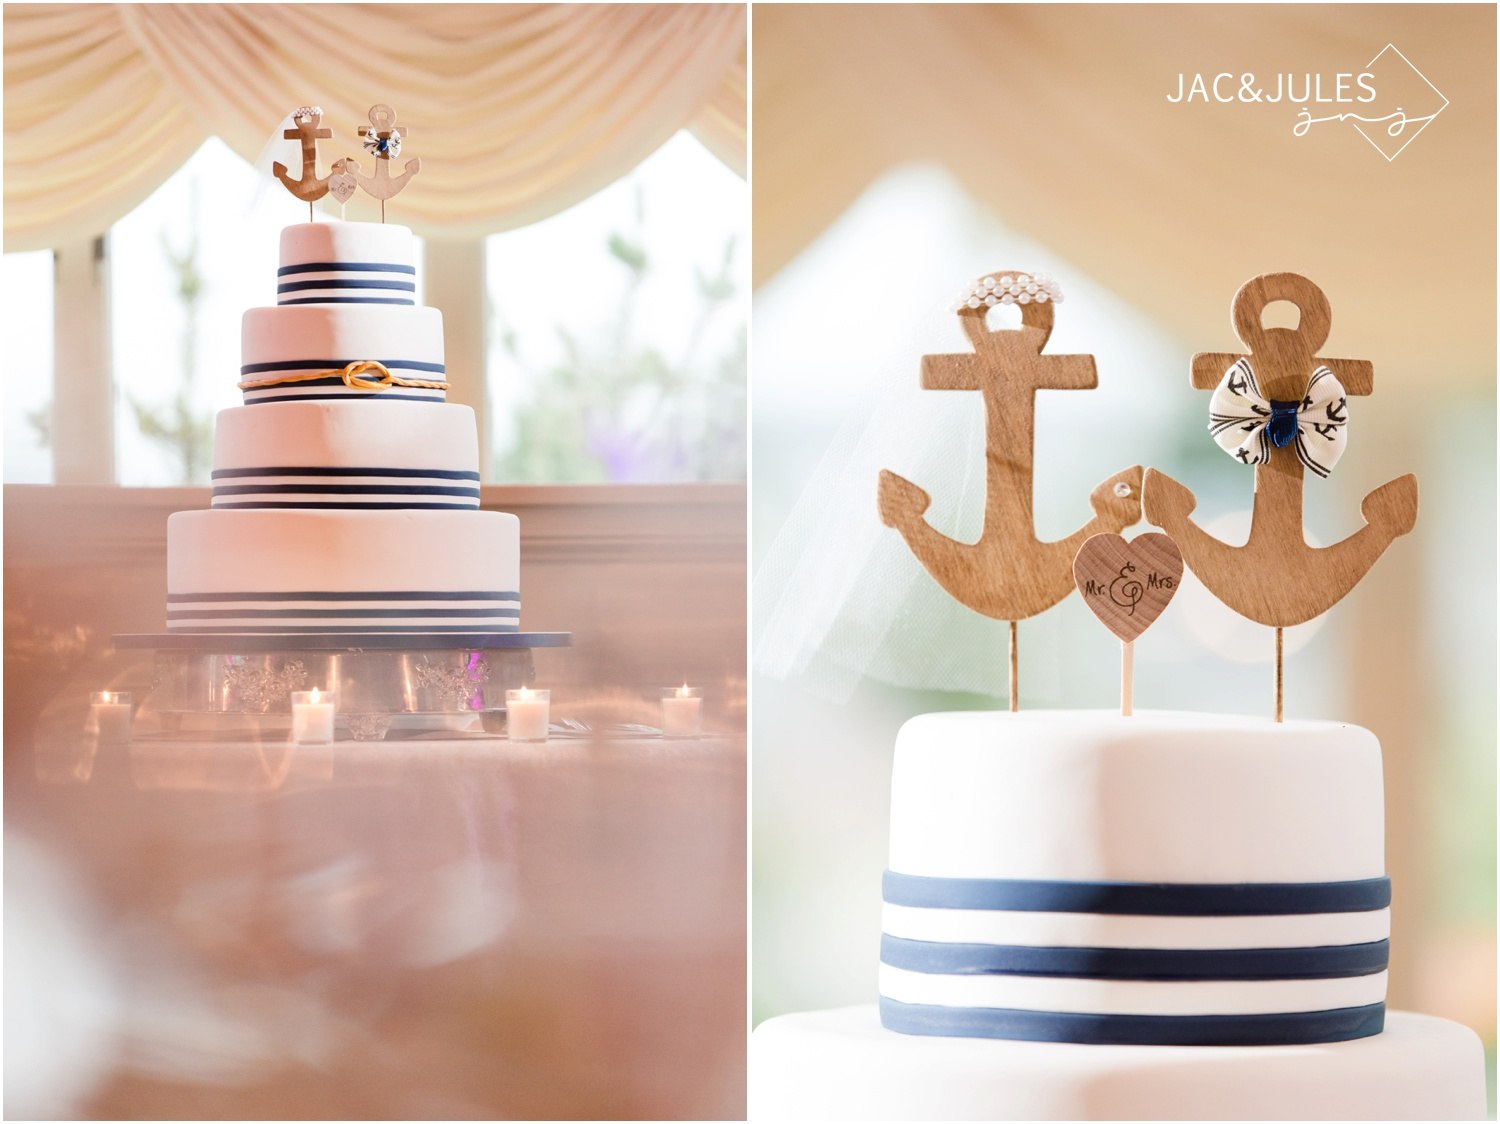 Nautical wedding cake by Carlo's Bakery at The Stateroom in LBI, NJ